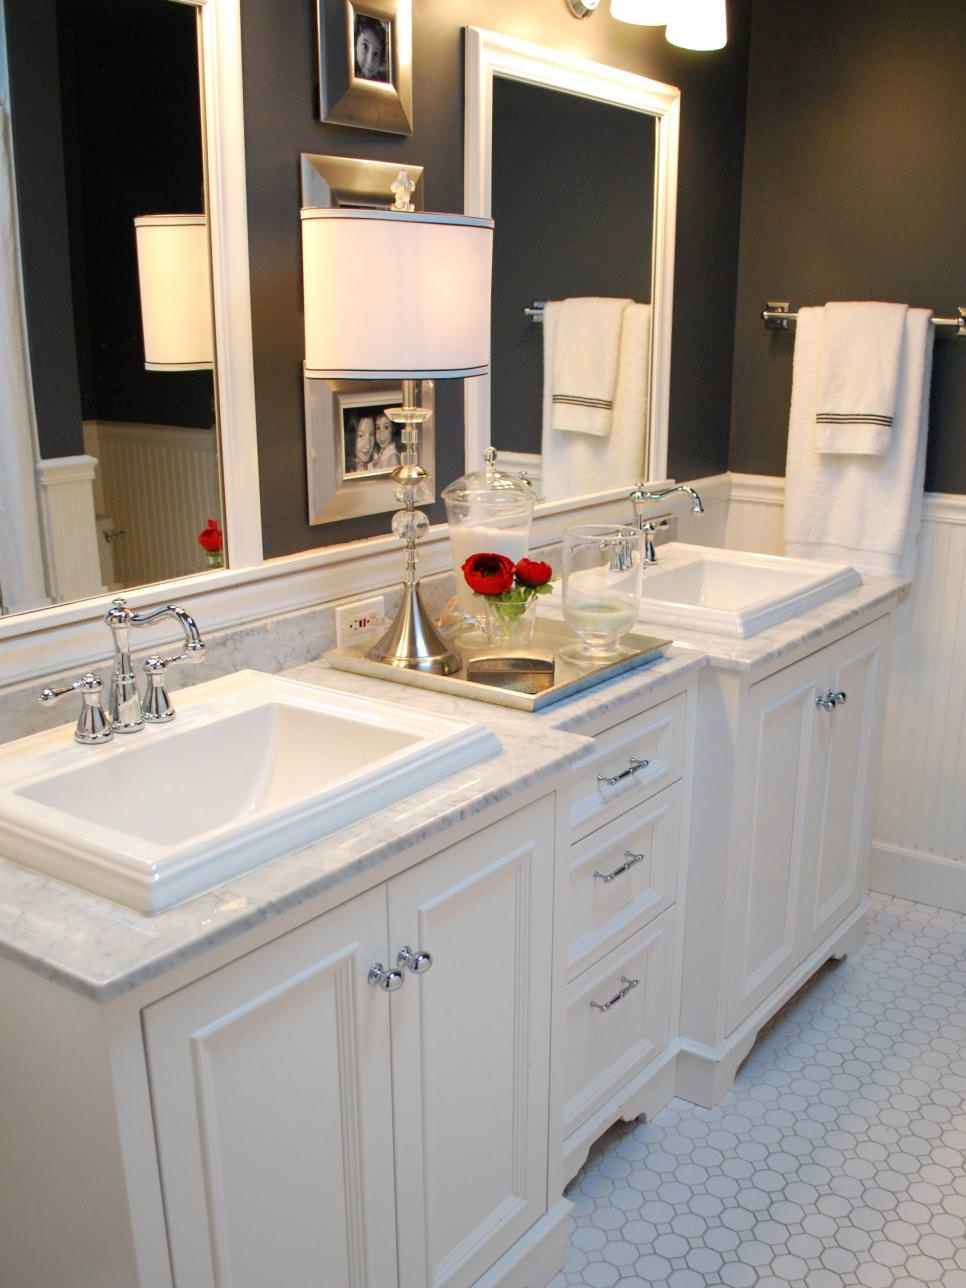 24 double bathroom vanity ideas bathroom designs for Bathroom vanity designs images